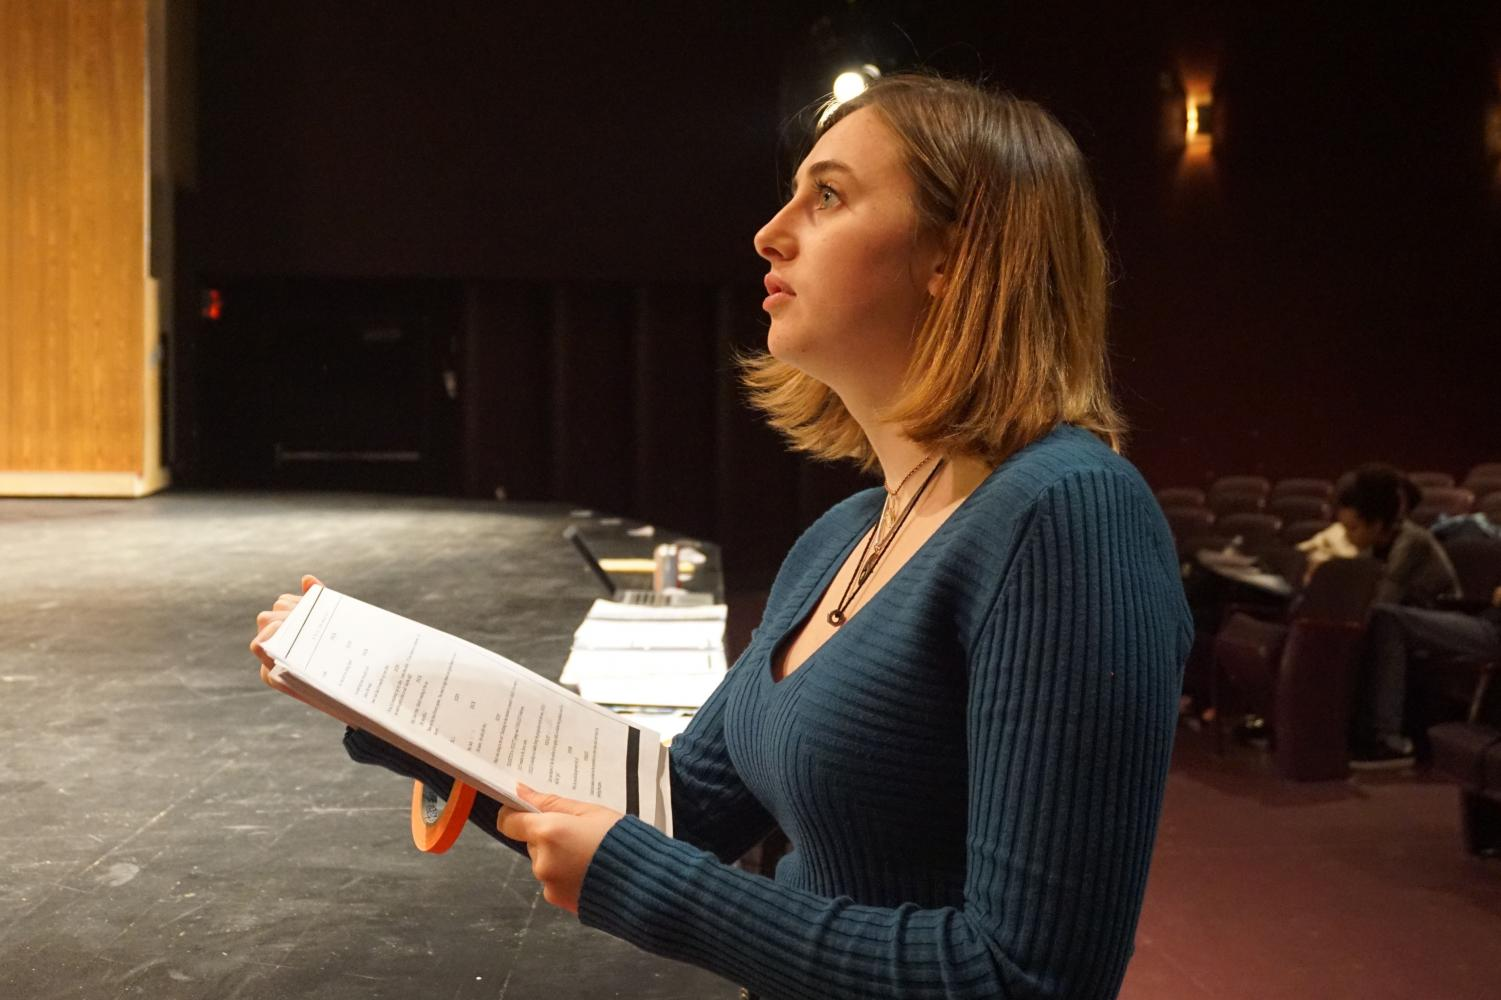 Senior Nietzsche Deuel feeds lines to actors during theater rehearsal Oct. 24. Deuel is the active stage manager for '9 to 5 the Musical.'